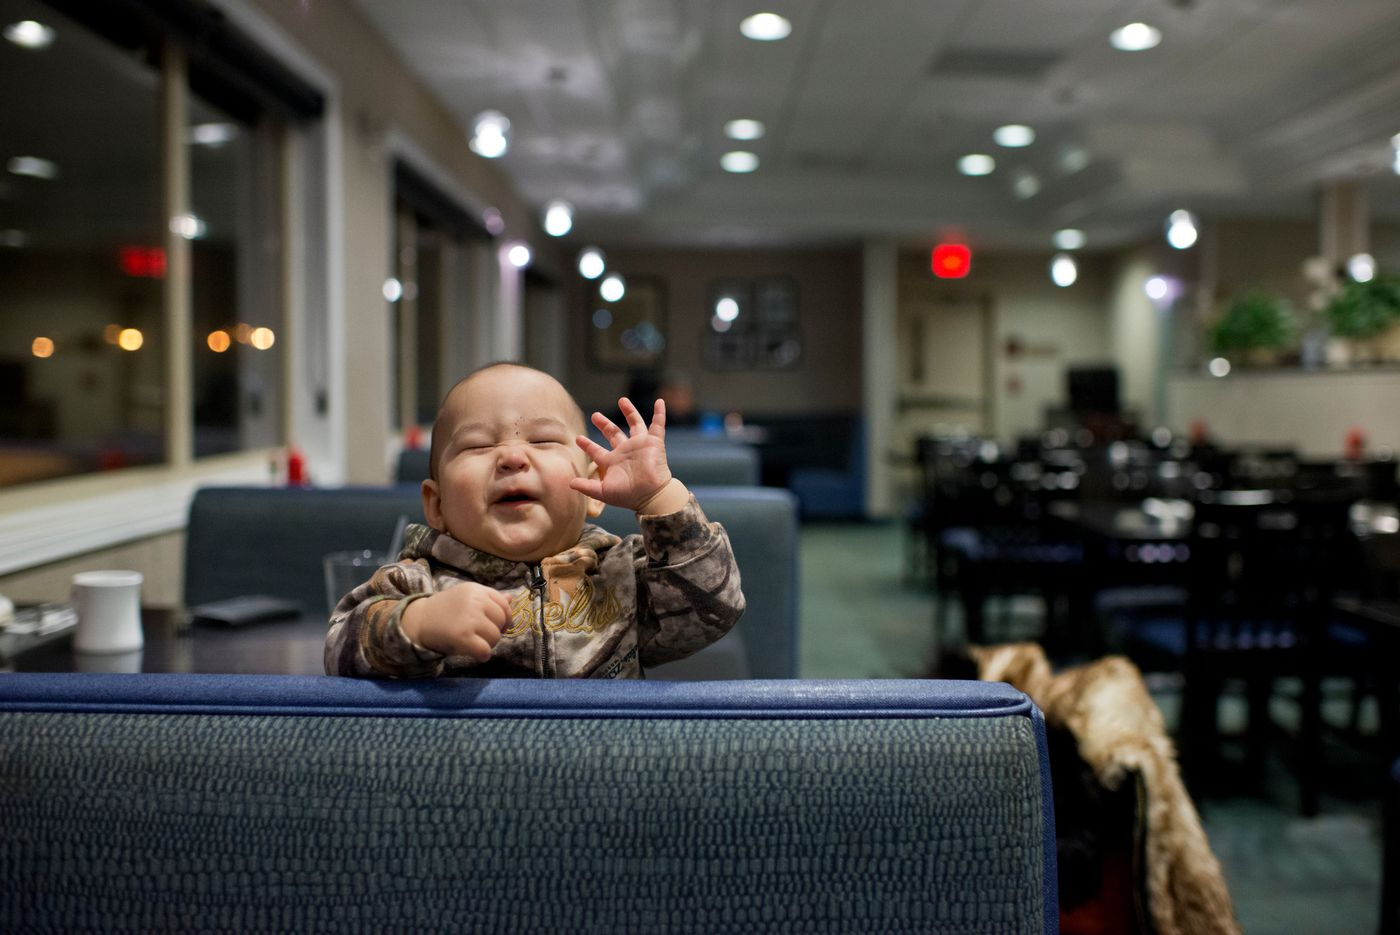 Nine-month-old Dillon Patkotak plays with his mom, Flora Patkotak, while the family dines at Niggivikput, a restaurant in the Top of the World Hotel. (Marc Lester / Alaska Dispatch News)